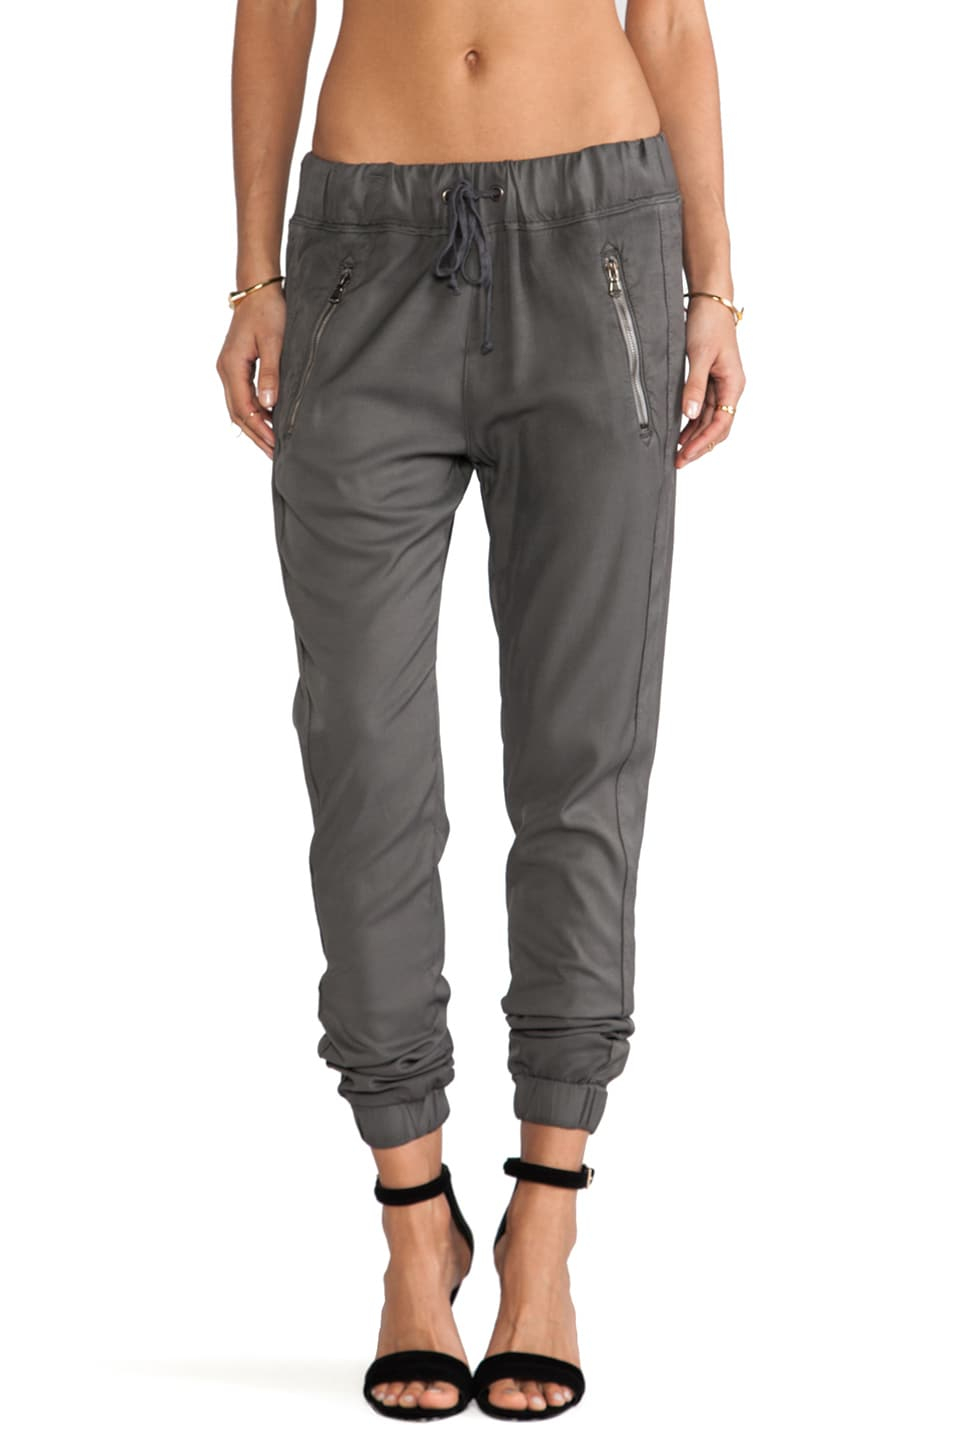 Hudson Jeans Katie Crop Pant in Grey